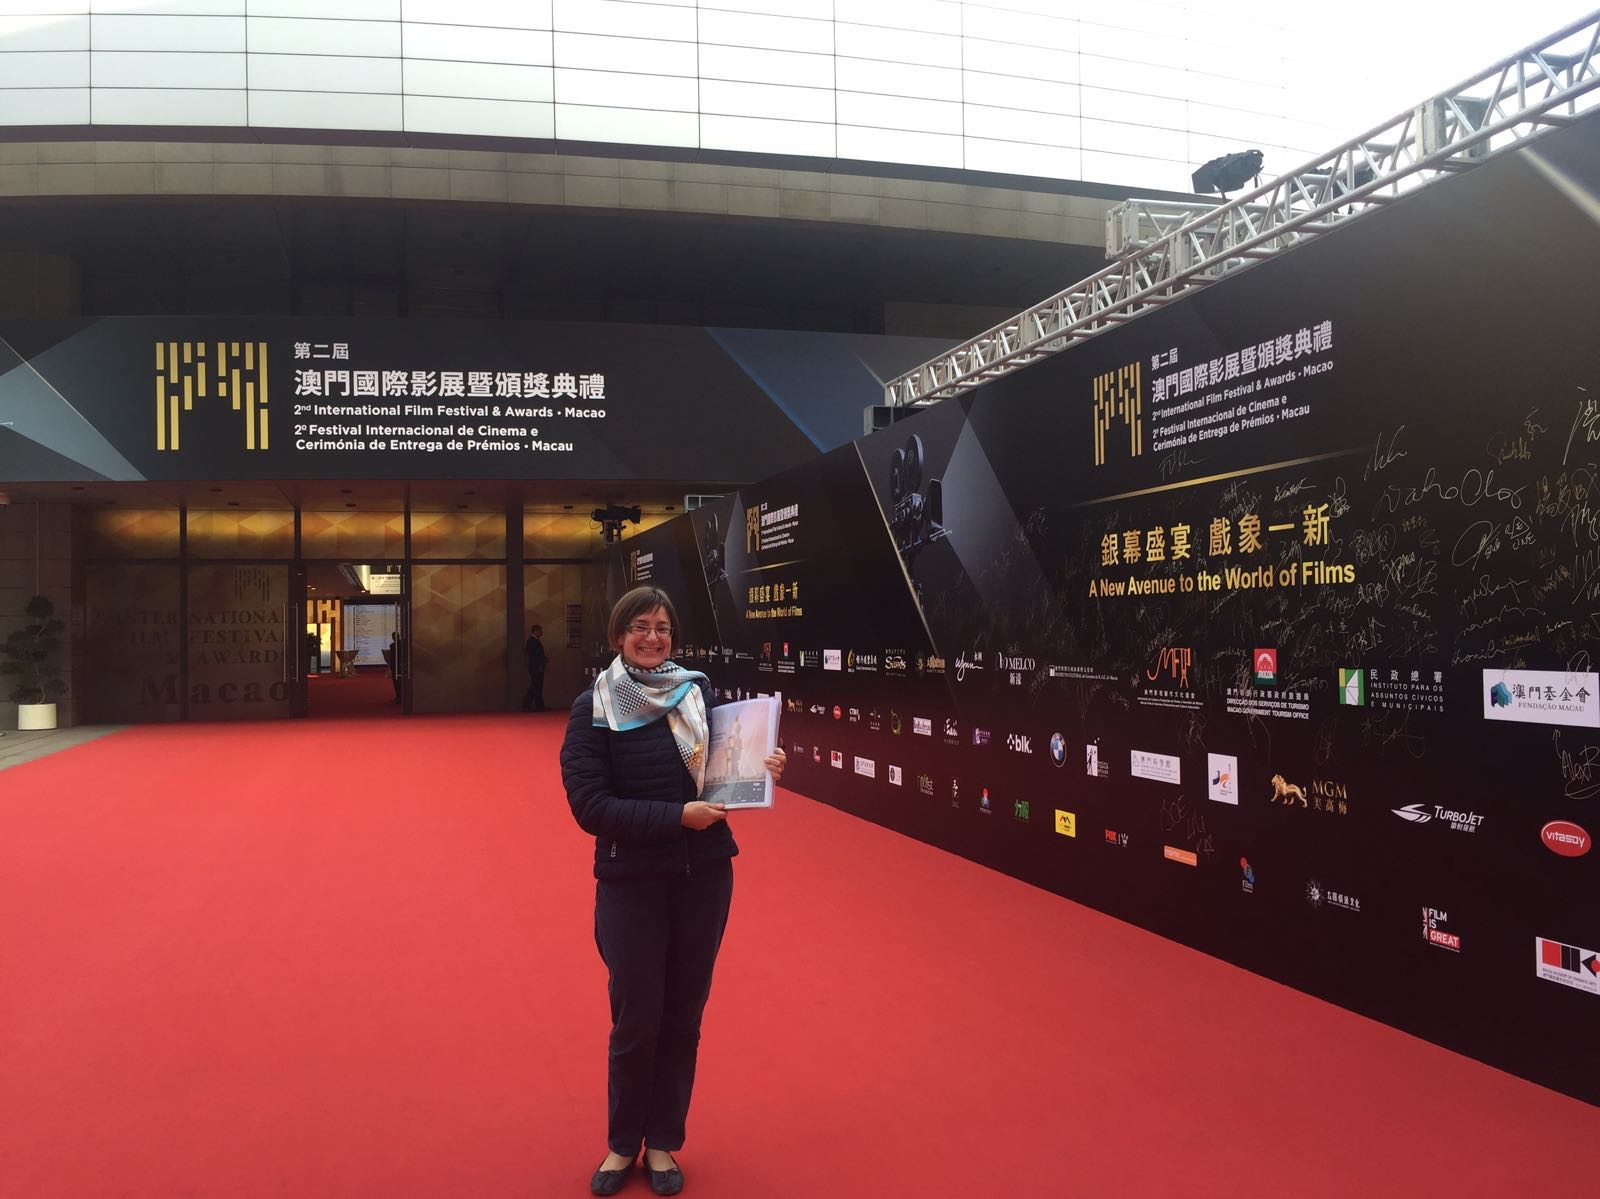 2nd International Film Festival&Awards Macao